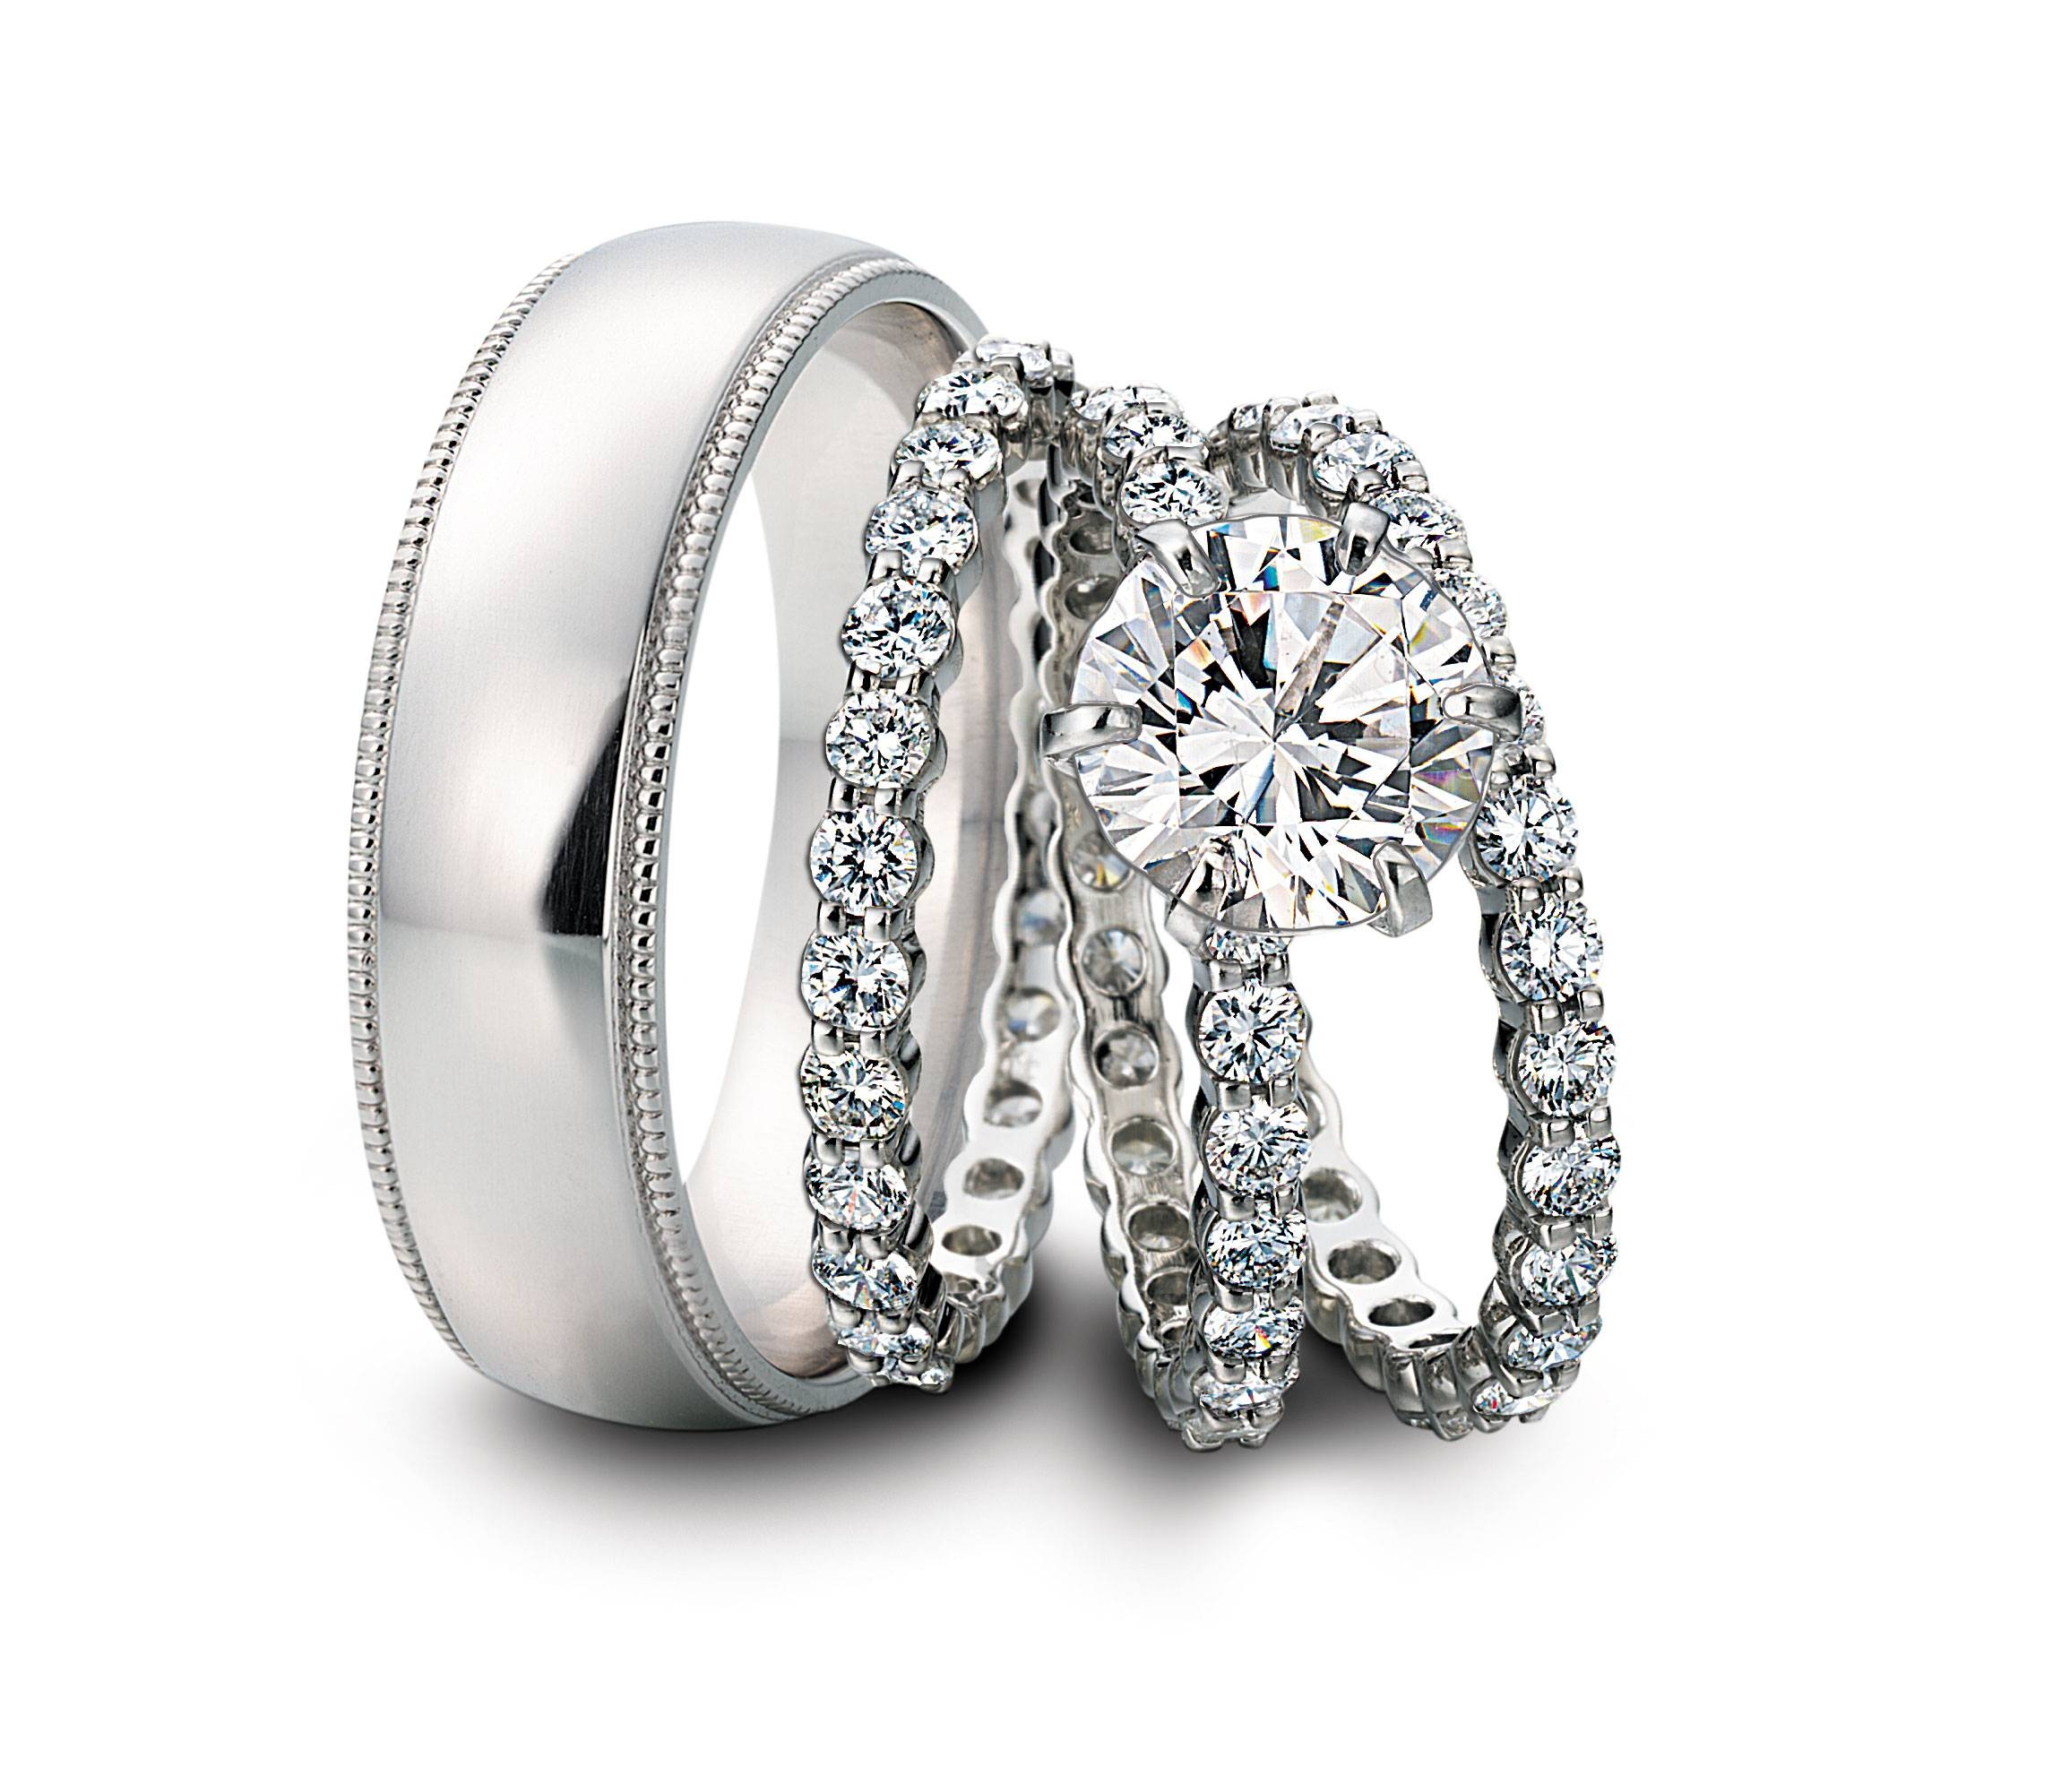 Cheap Matching Wedding Bands For Him And Her | Wedding Ideas Intended For Cheap Wedding Bands For Her (View 3 of 15)